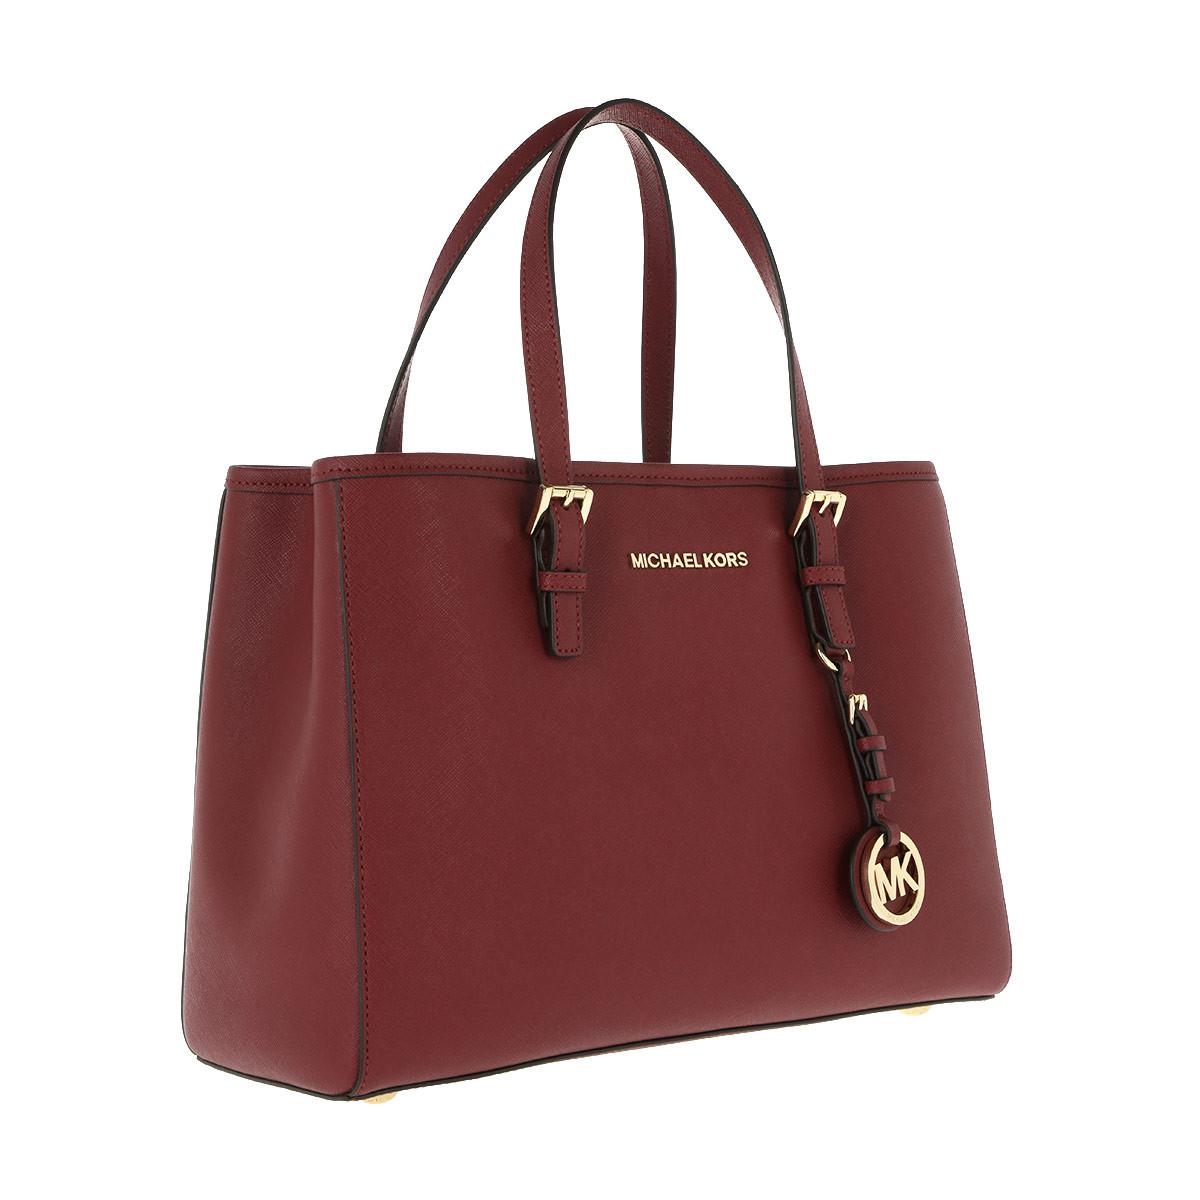 7185e7b59c ... germany michael kors jet set travel md ew tote mulberry in red lyst  5d7b6 5f251